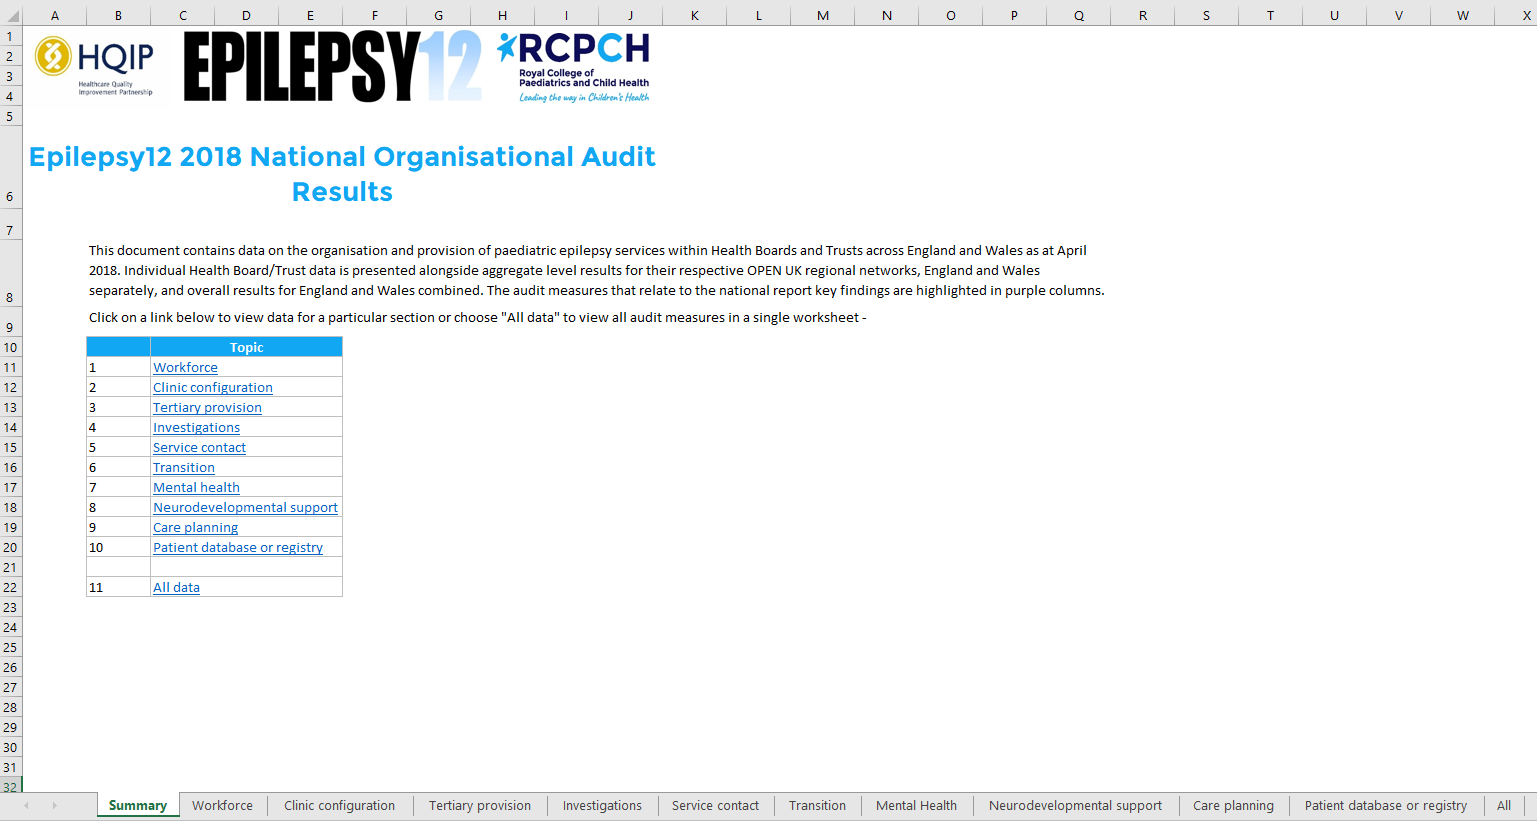 Epilepsy12 National Organisational Audit Report 2018 | RCPCH